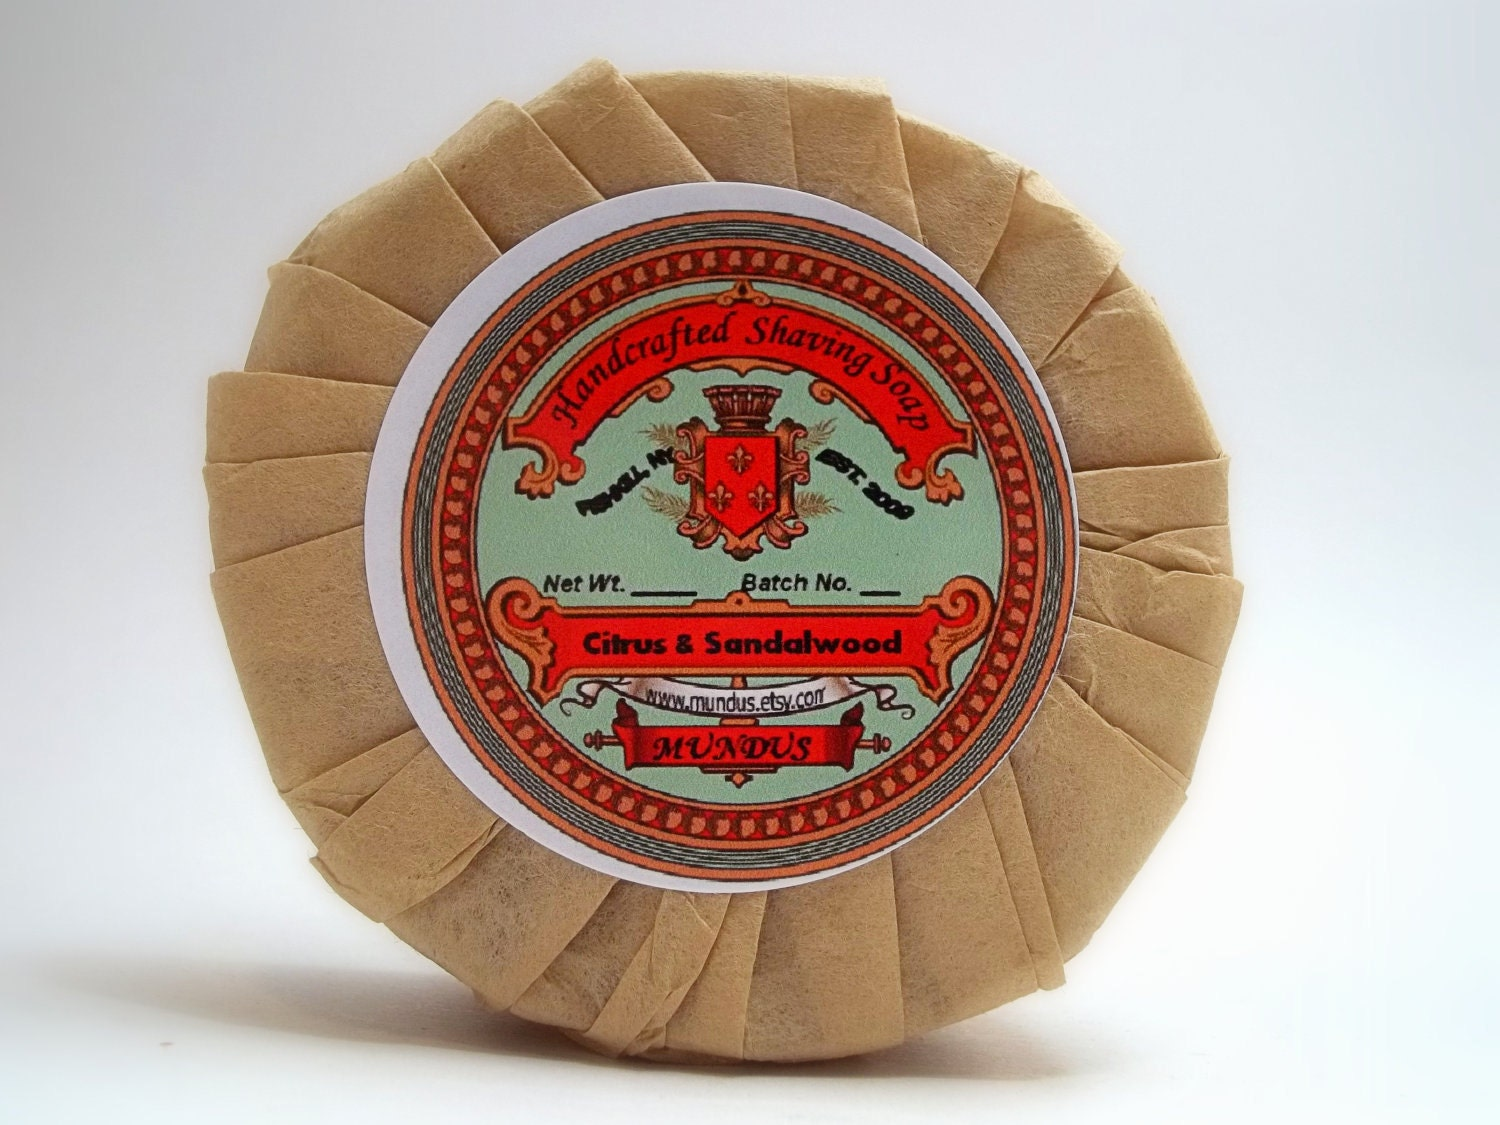 Citrus & Sandalwood: Tallow and Lanolin Shaving Soap - Mundus